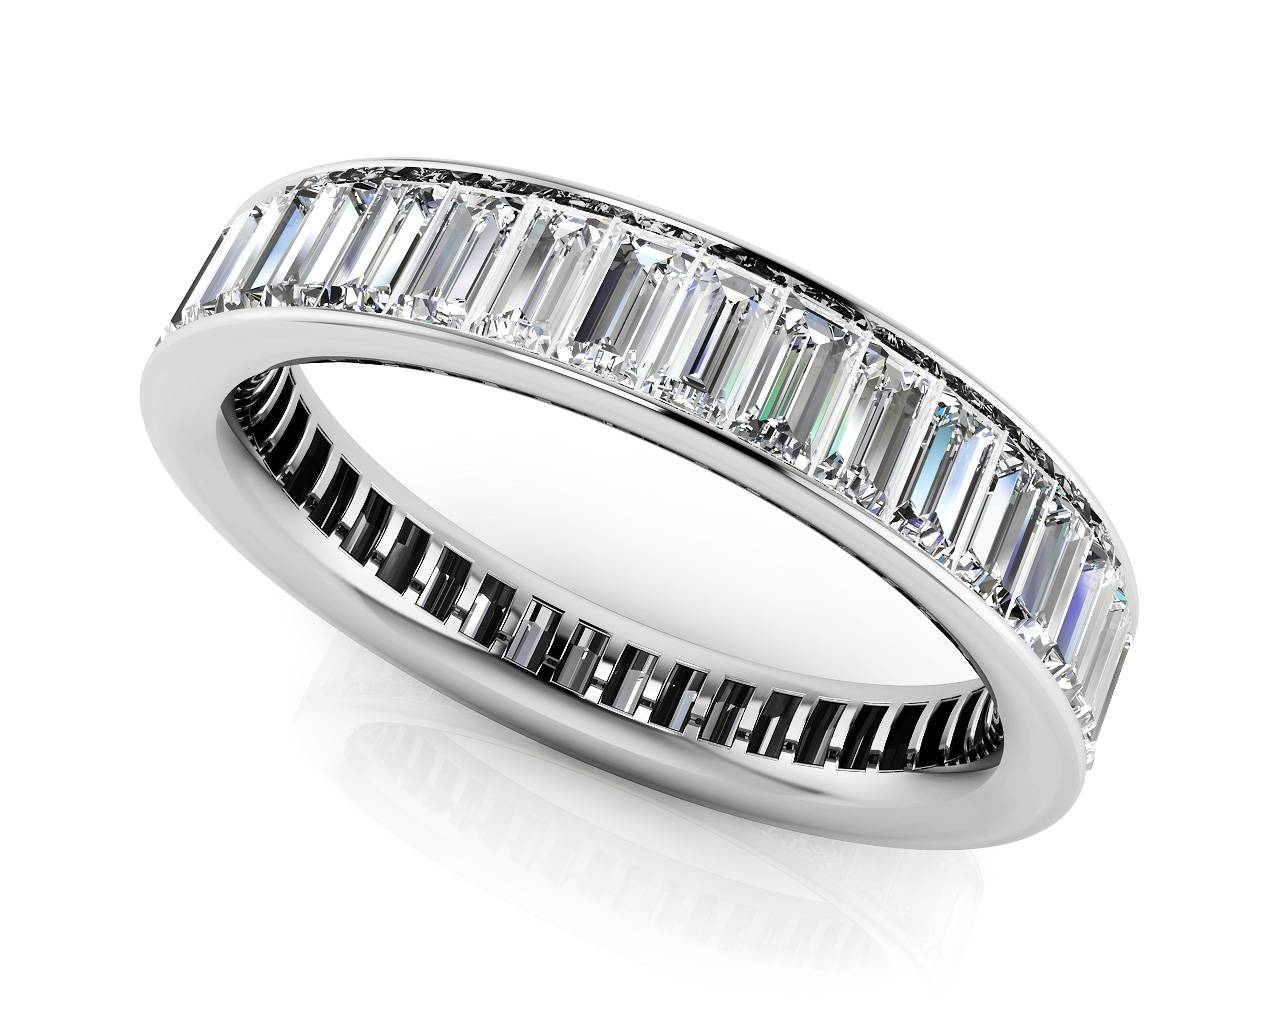 Large Collection Of Quality Diamond Eternity Rings & Bands Inside Newest Baguette Anniversary Rings (View 18 of 25)